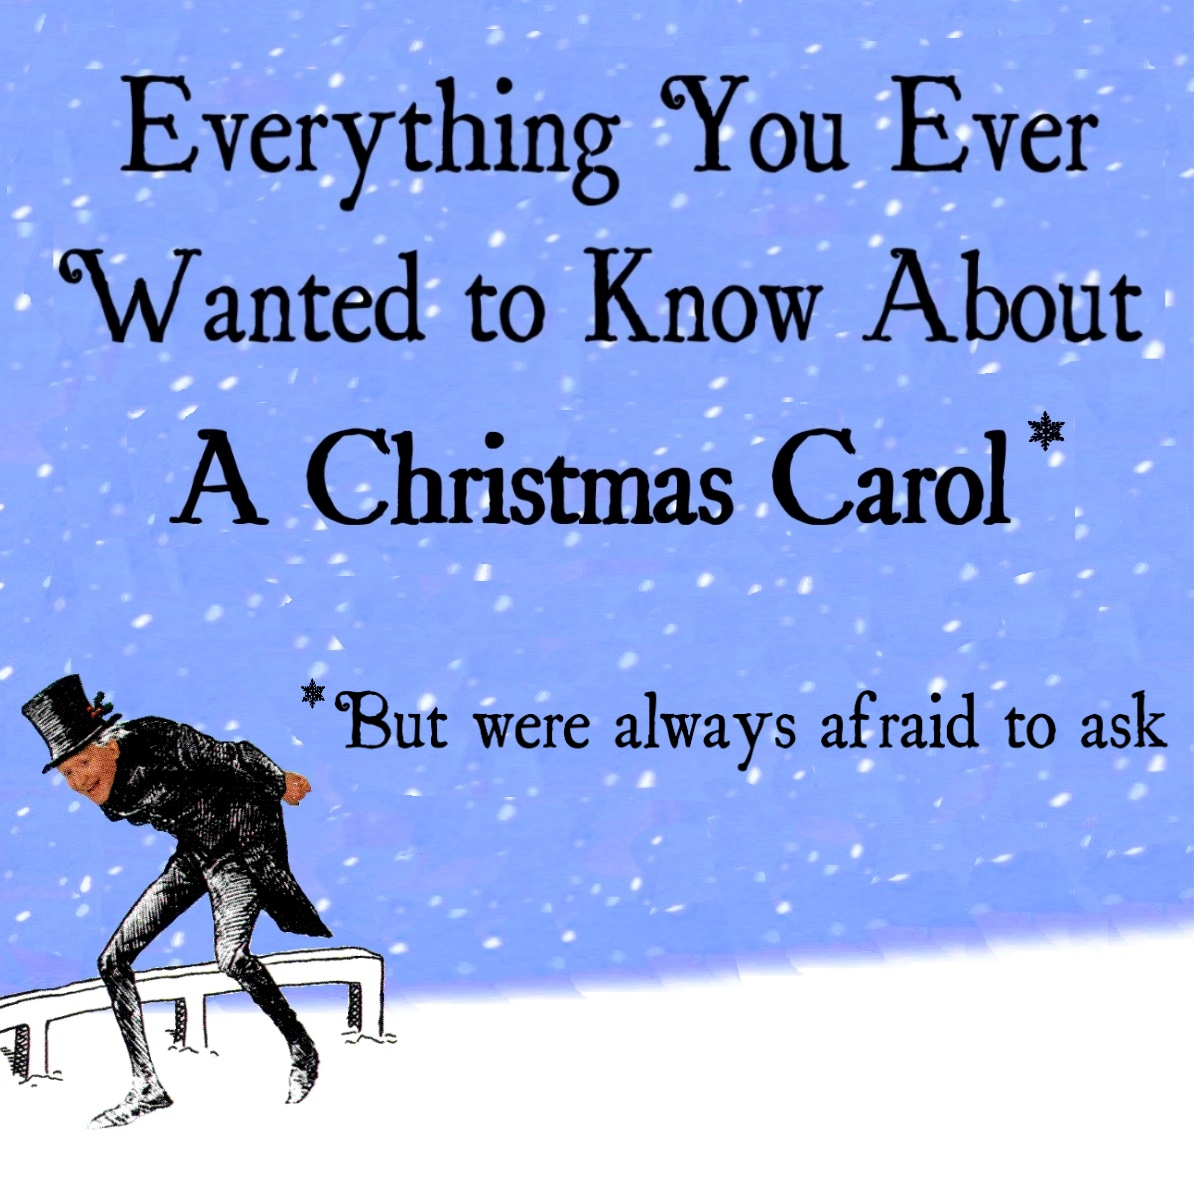 Everything You Ever Wanted to Know about  A Christmas Carol *      (*But were always afraid to ask)